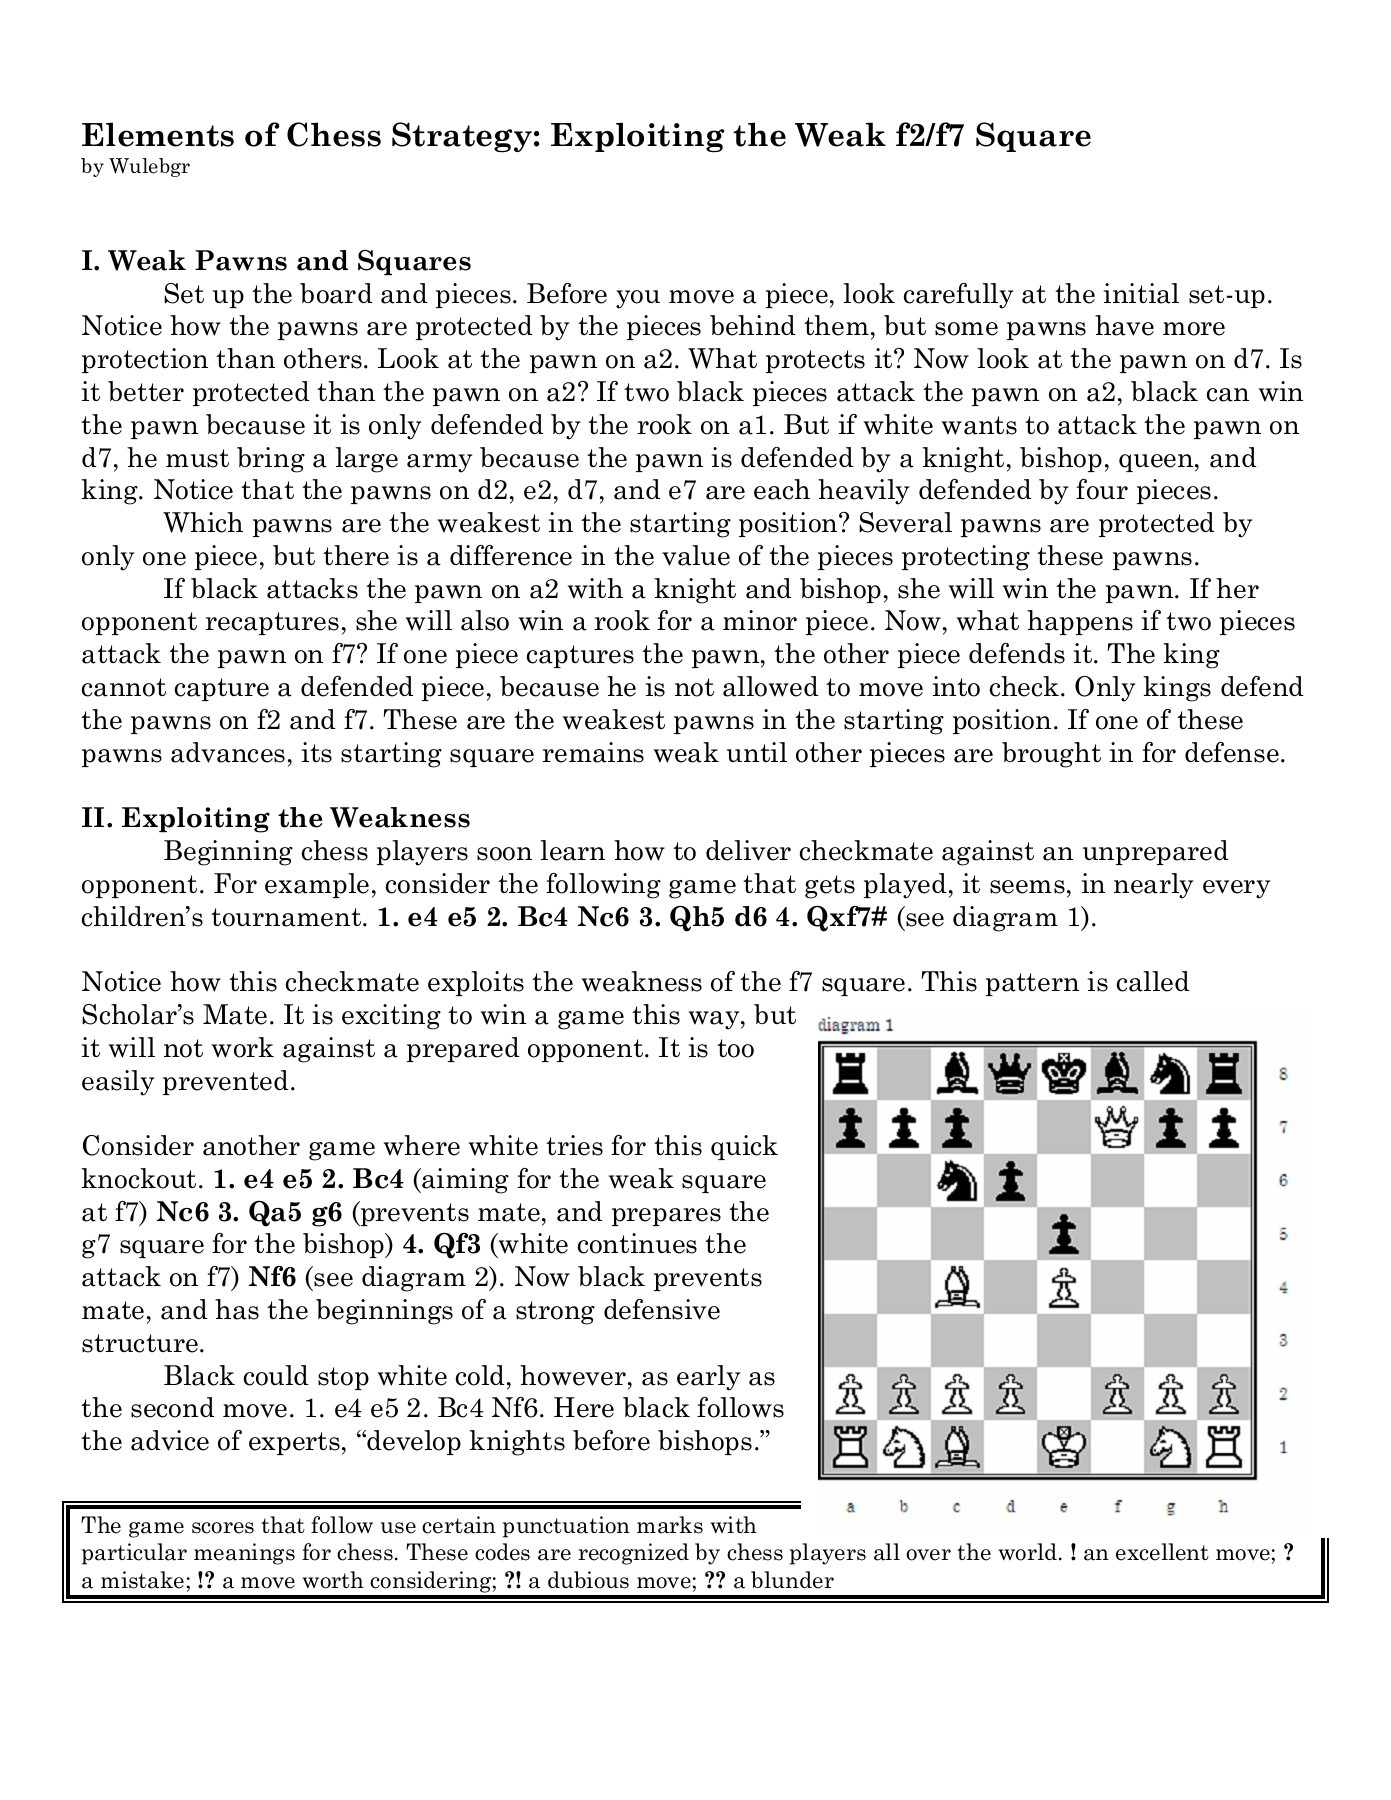 Elements of Chess Strategy: Exploiting the Weak f2/f7 Square